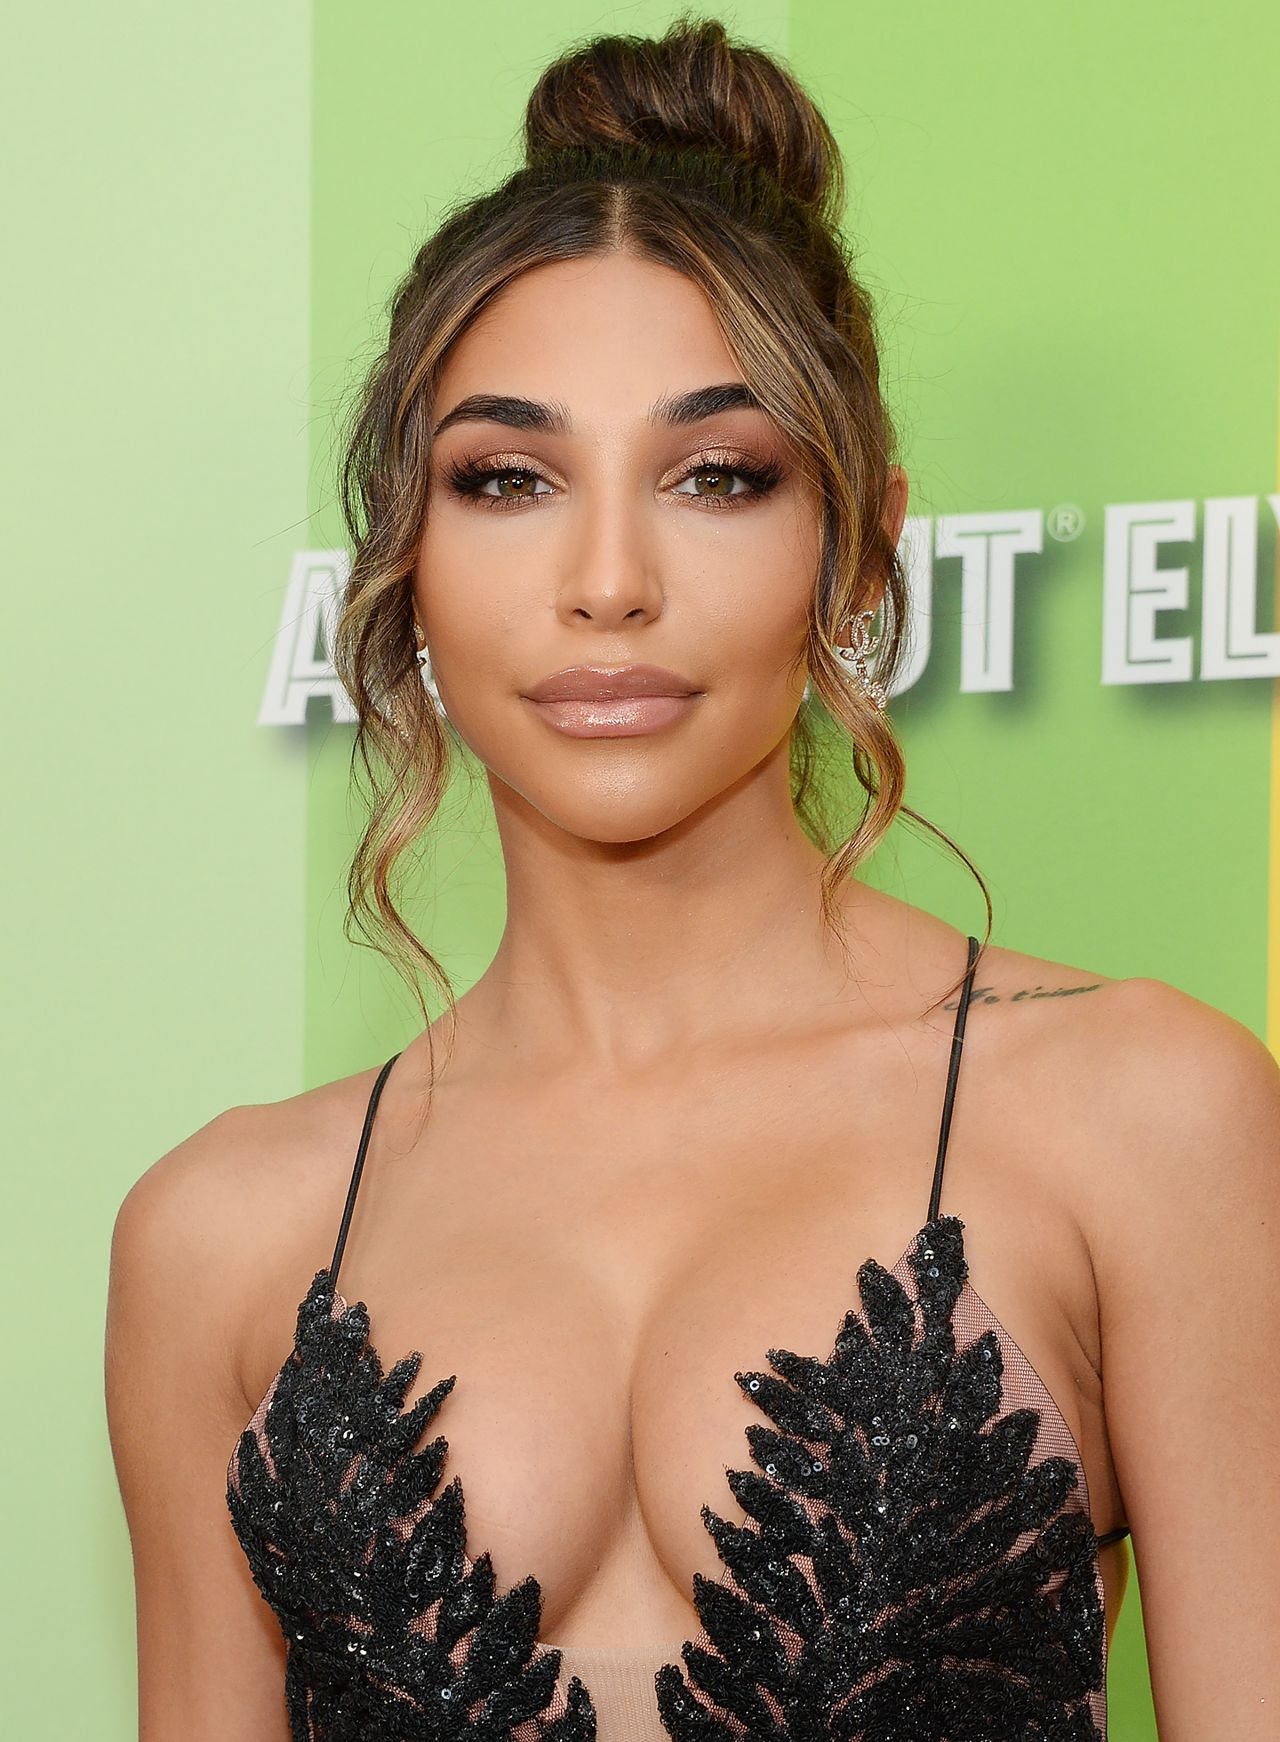 Glamour Chantel Jeffries Hot Decollete Black Dress - Glamour Chantel Jeffries Hot Decollete Black Dress